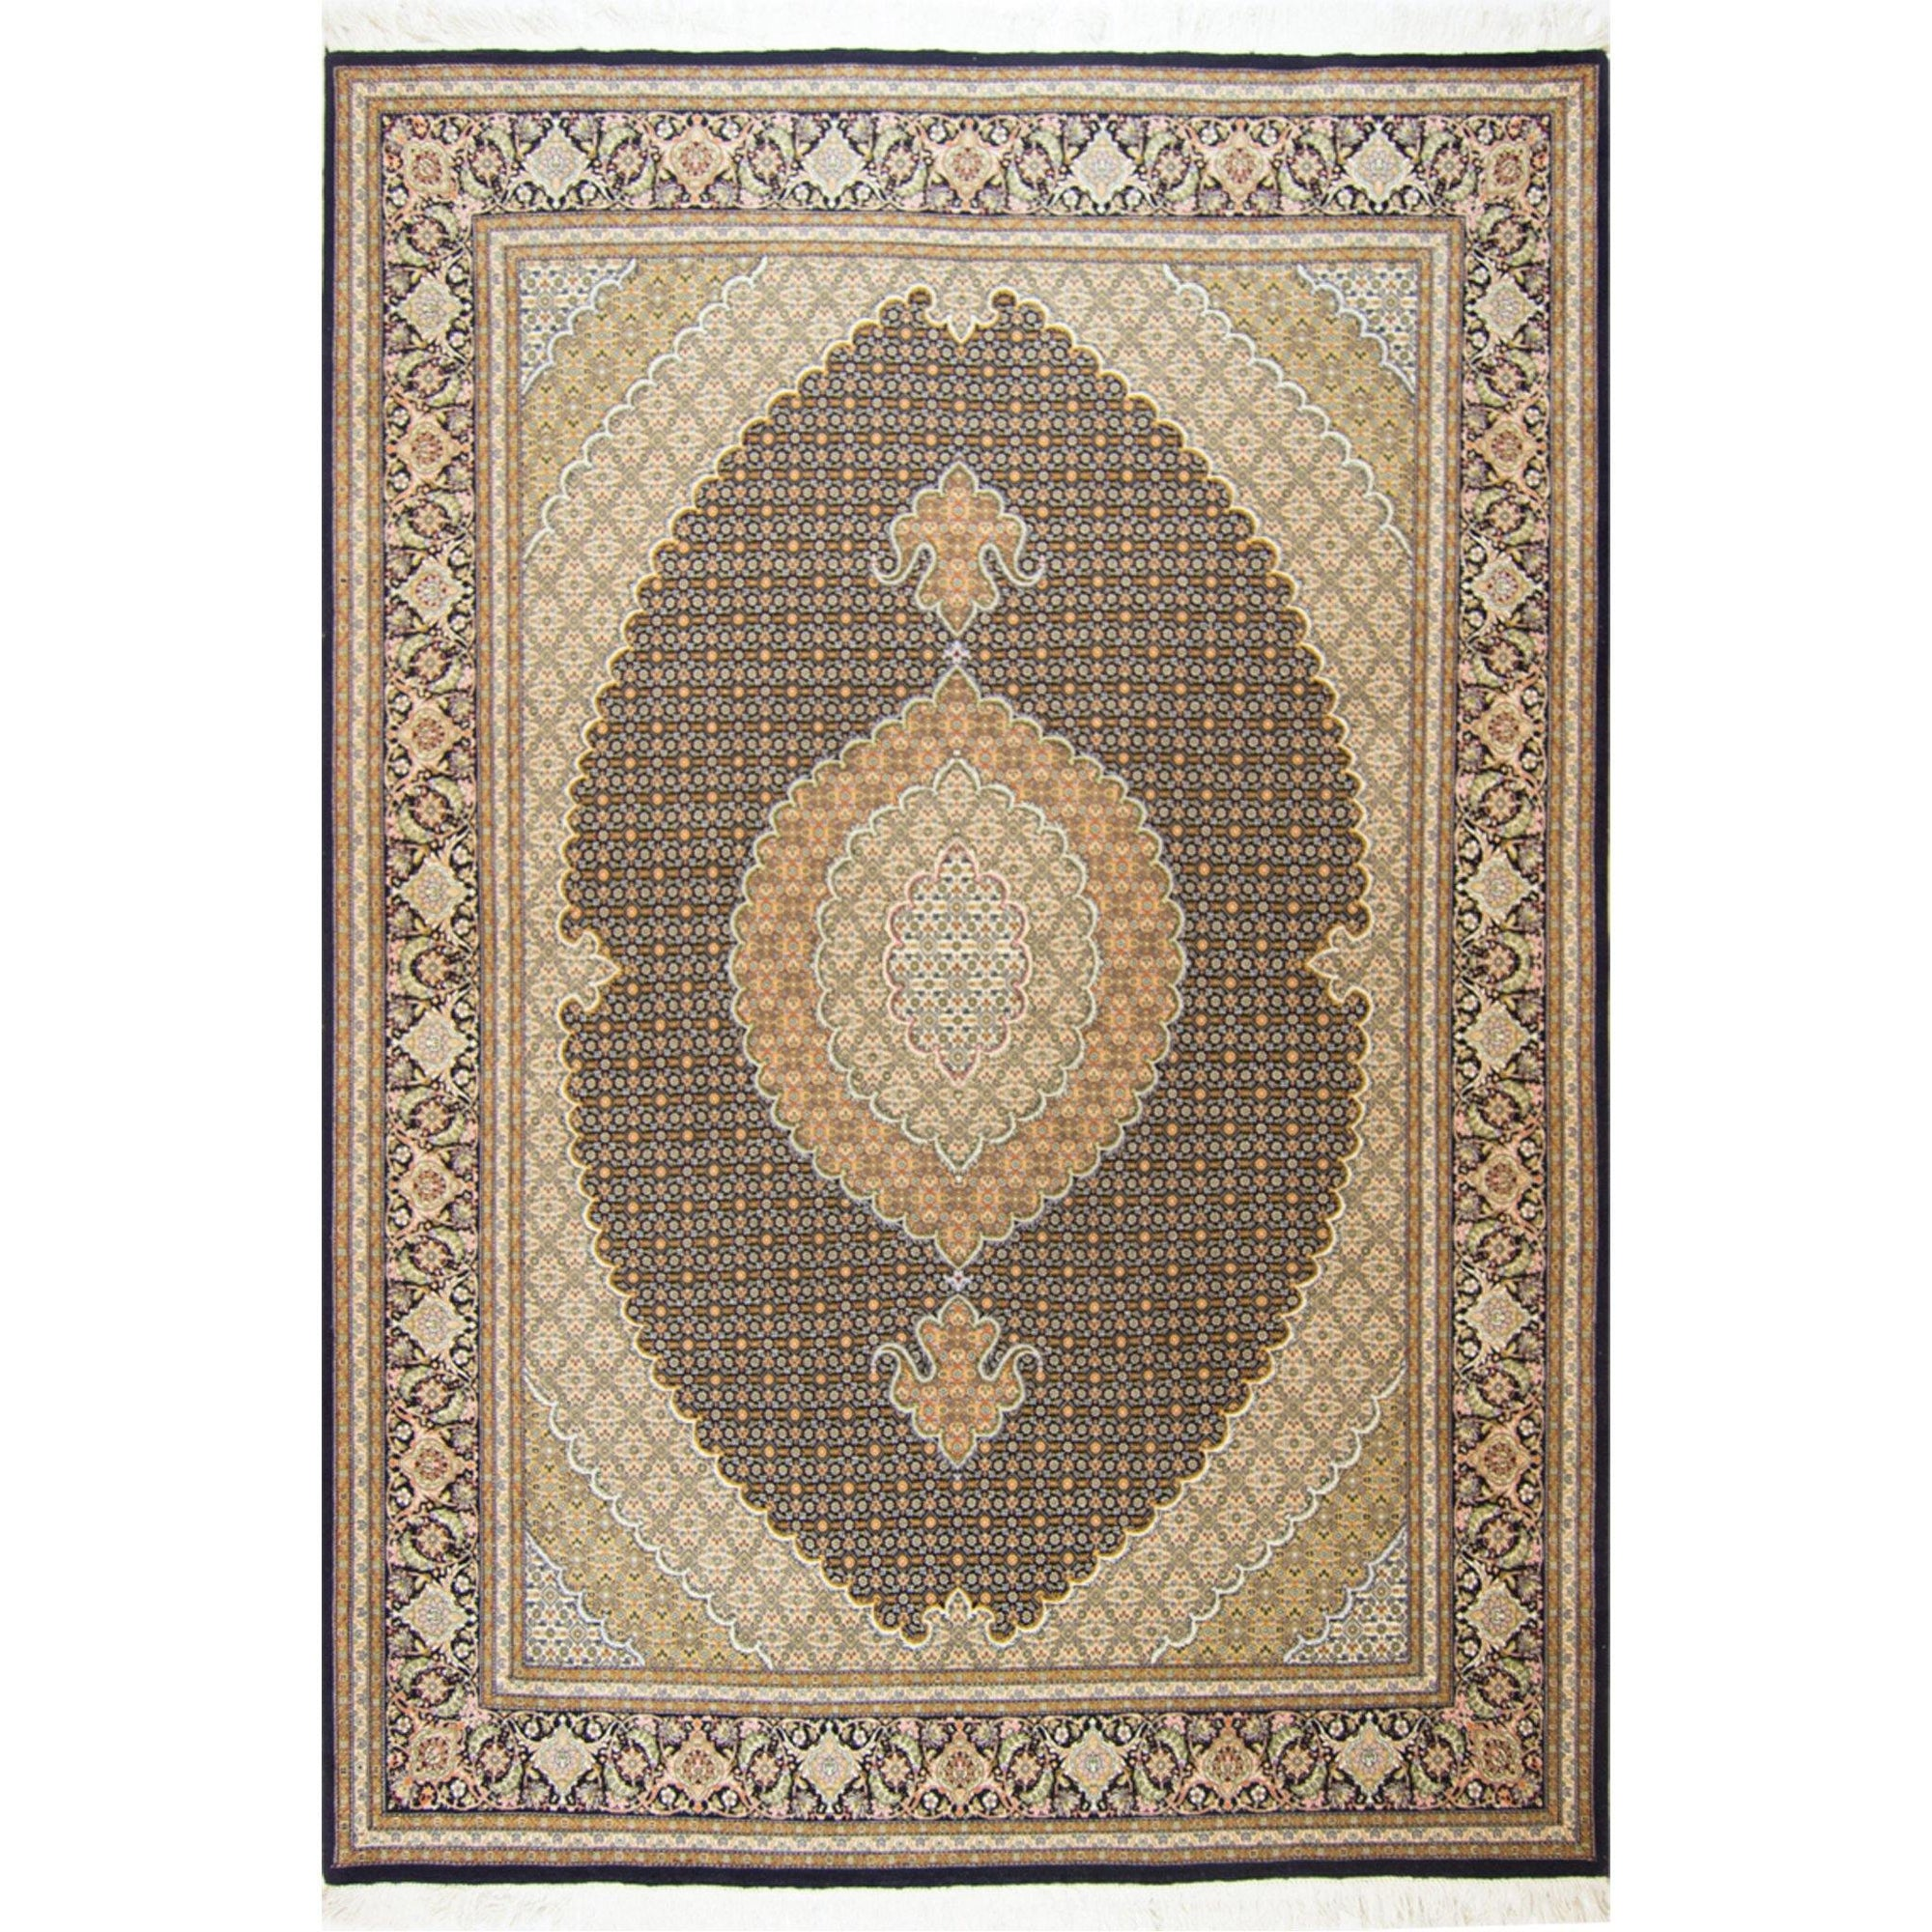 Super Fine Hand-knotted Wool and Silk Persian Tabriz - Mahi Rug 205 cm x 295 cm Persian-Rug | House-of-Haghi | NewMarket | Auckland | NZ | Handmade Persian Rugs | Hand Knotted Persian Rugs